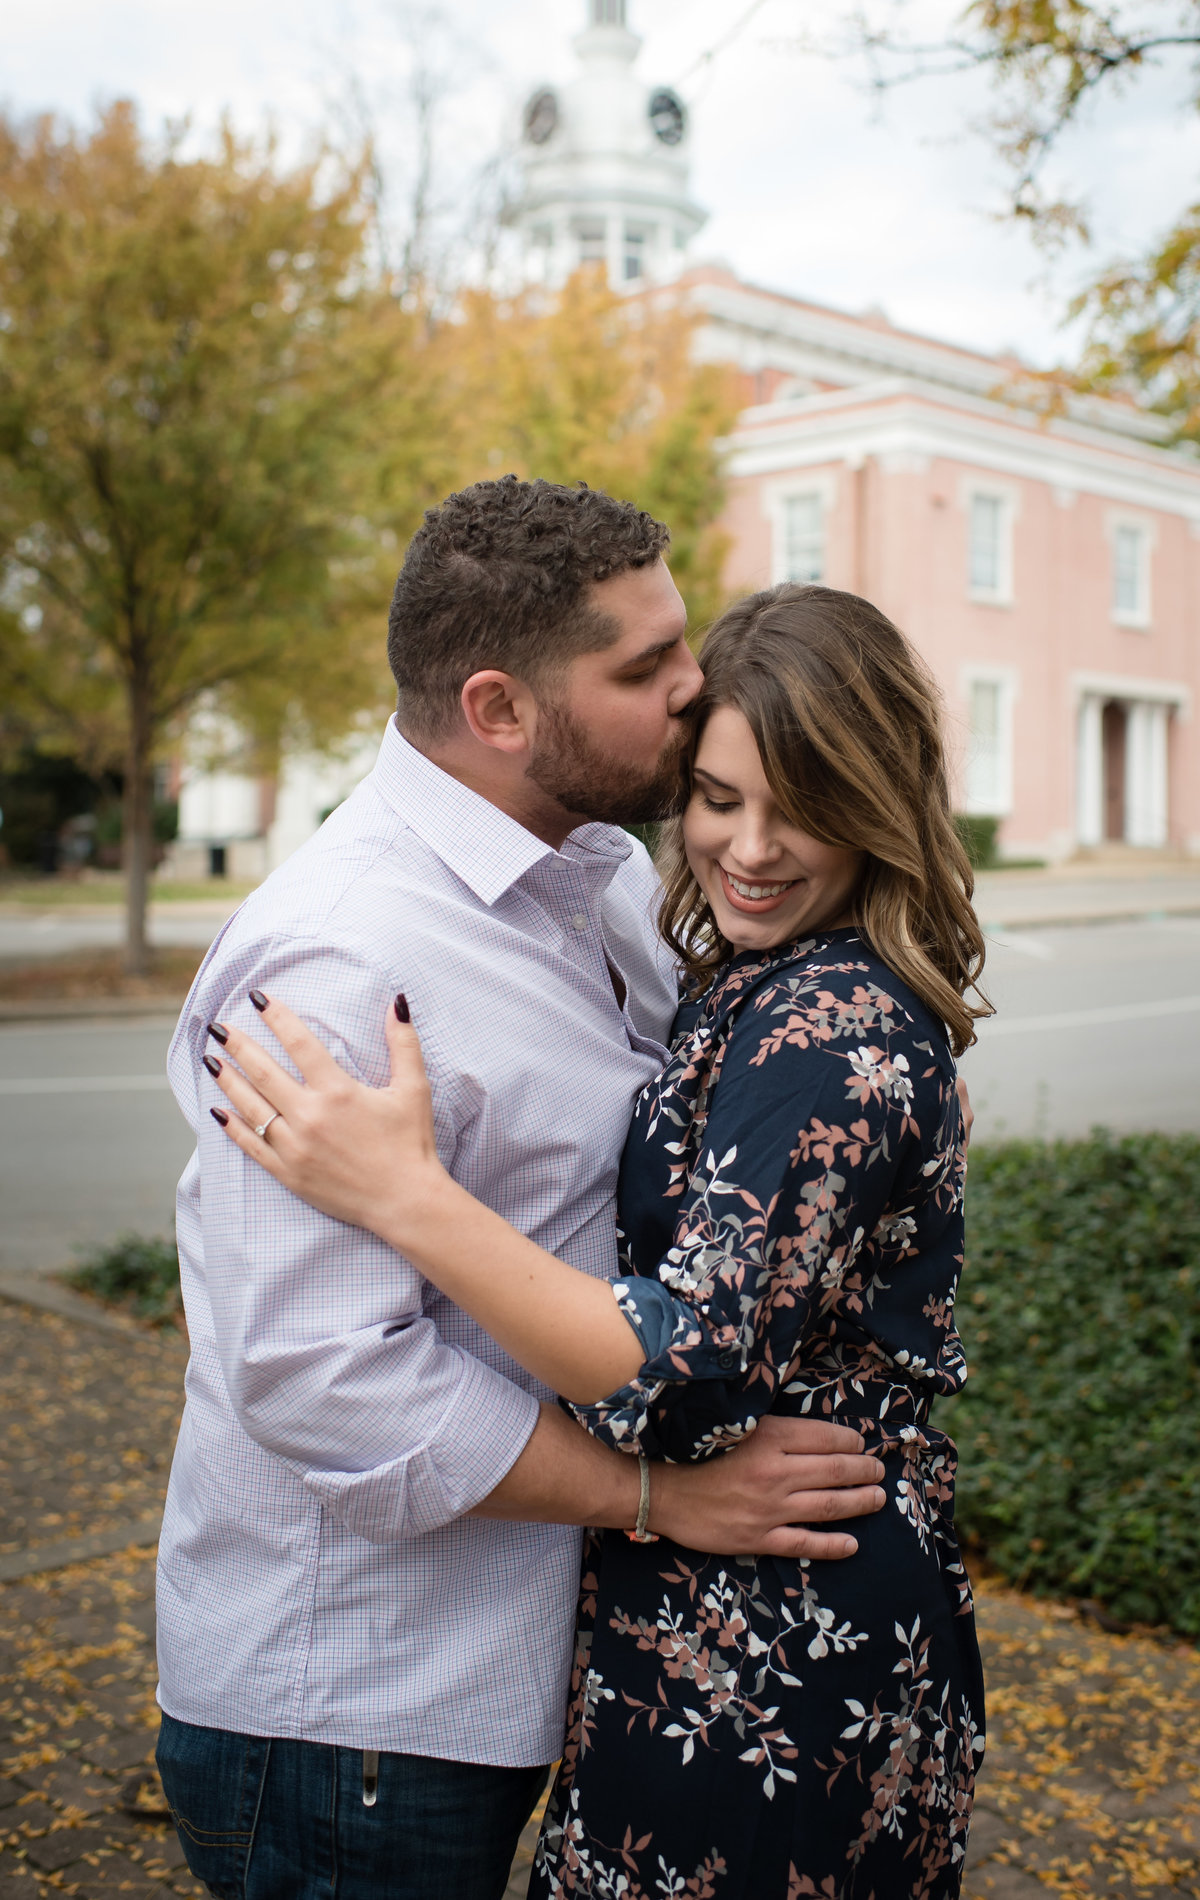 Tennessee Wedding Photographer - Mint Magnolia Photography586